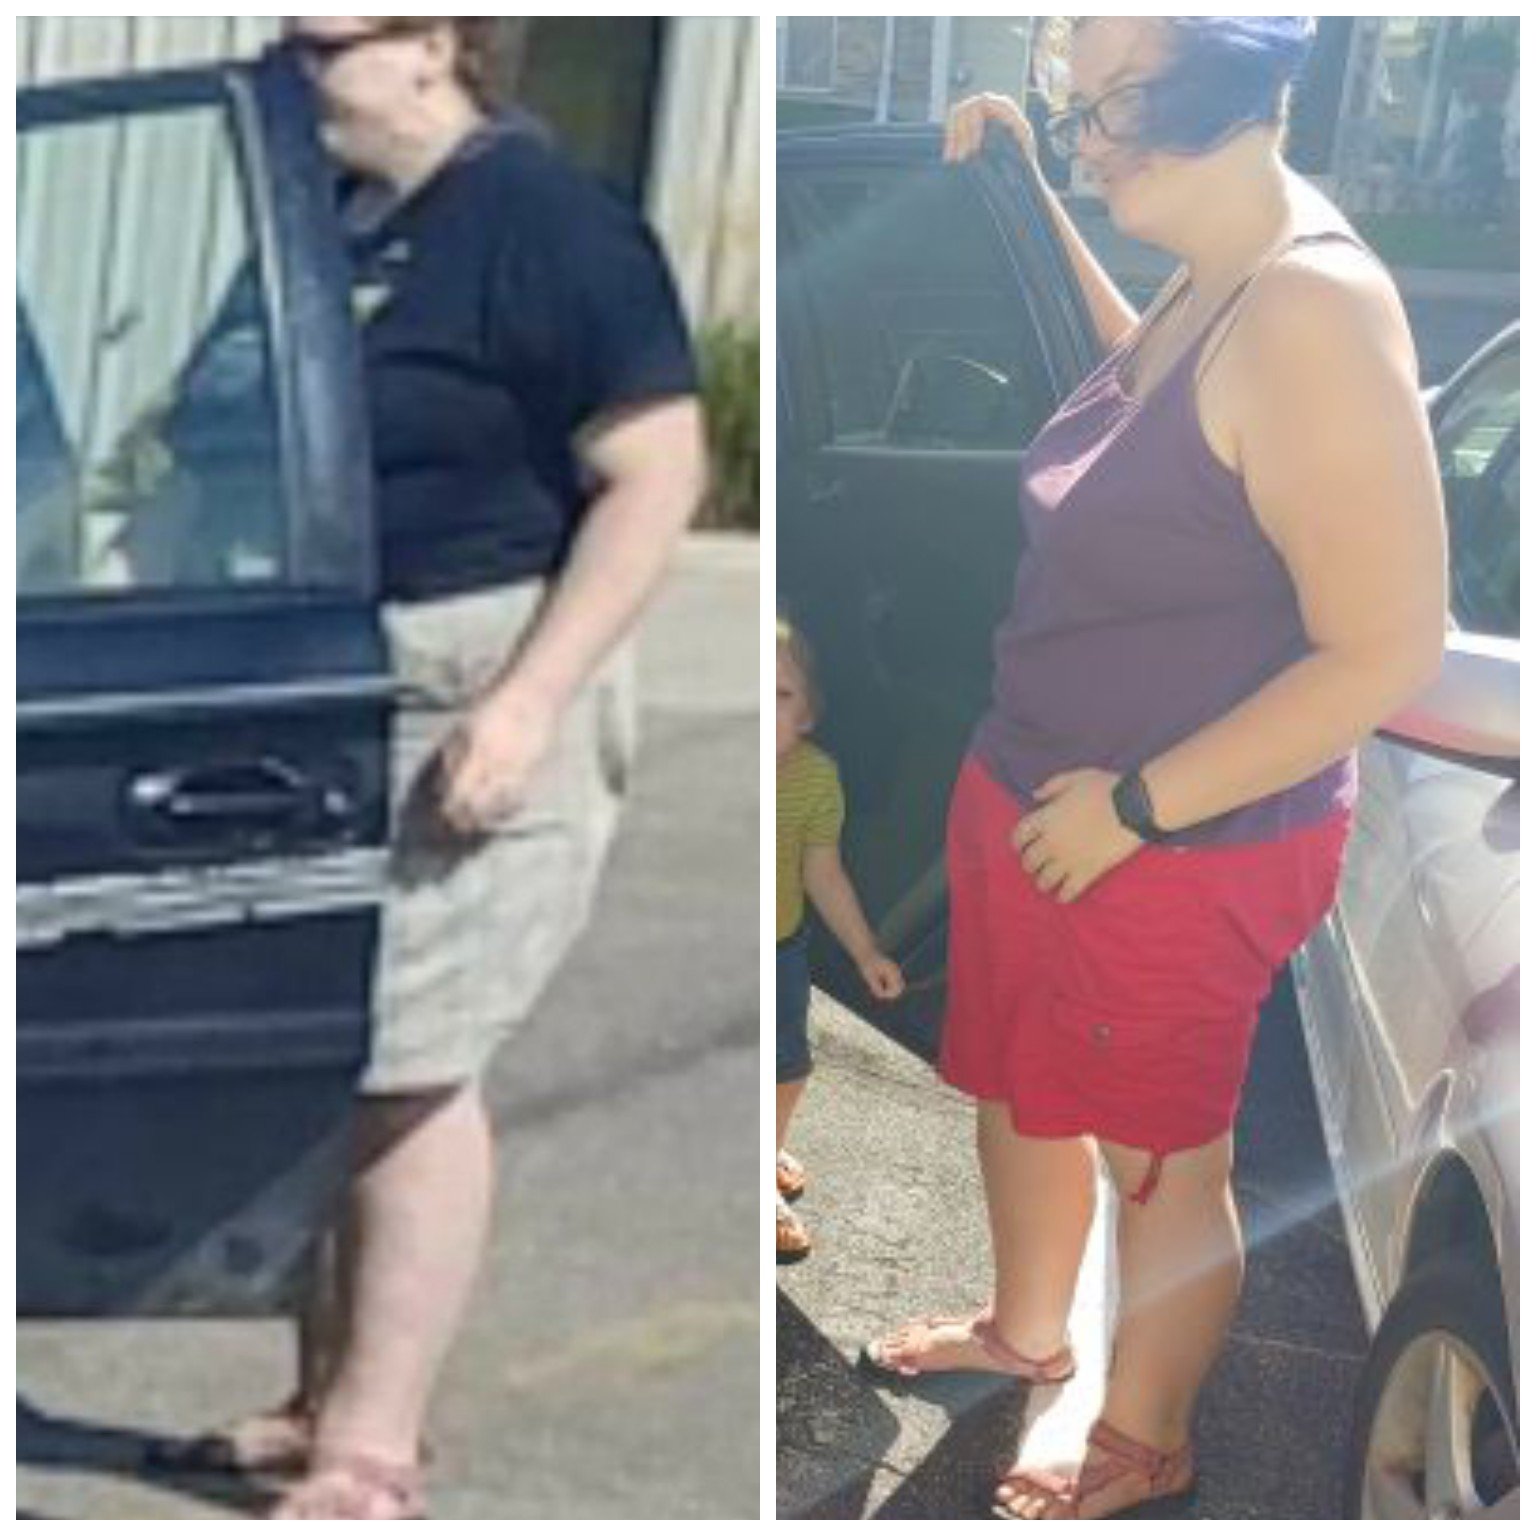 60 lbs Weight Loss Before and After 5 foot 8 Female 290 lbs to 230 lbs